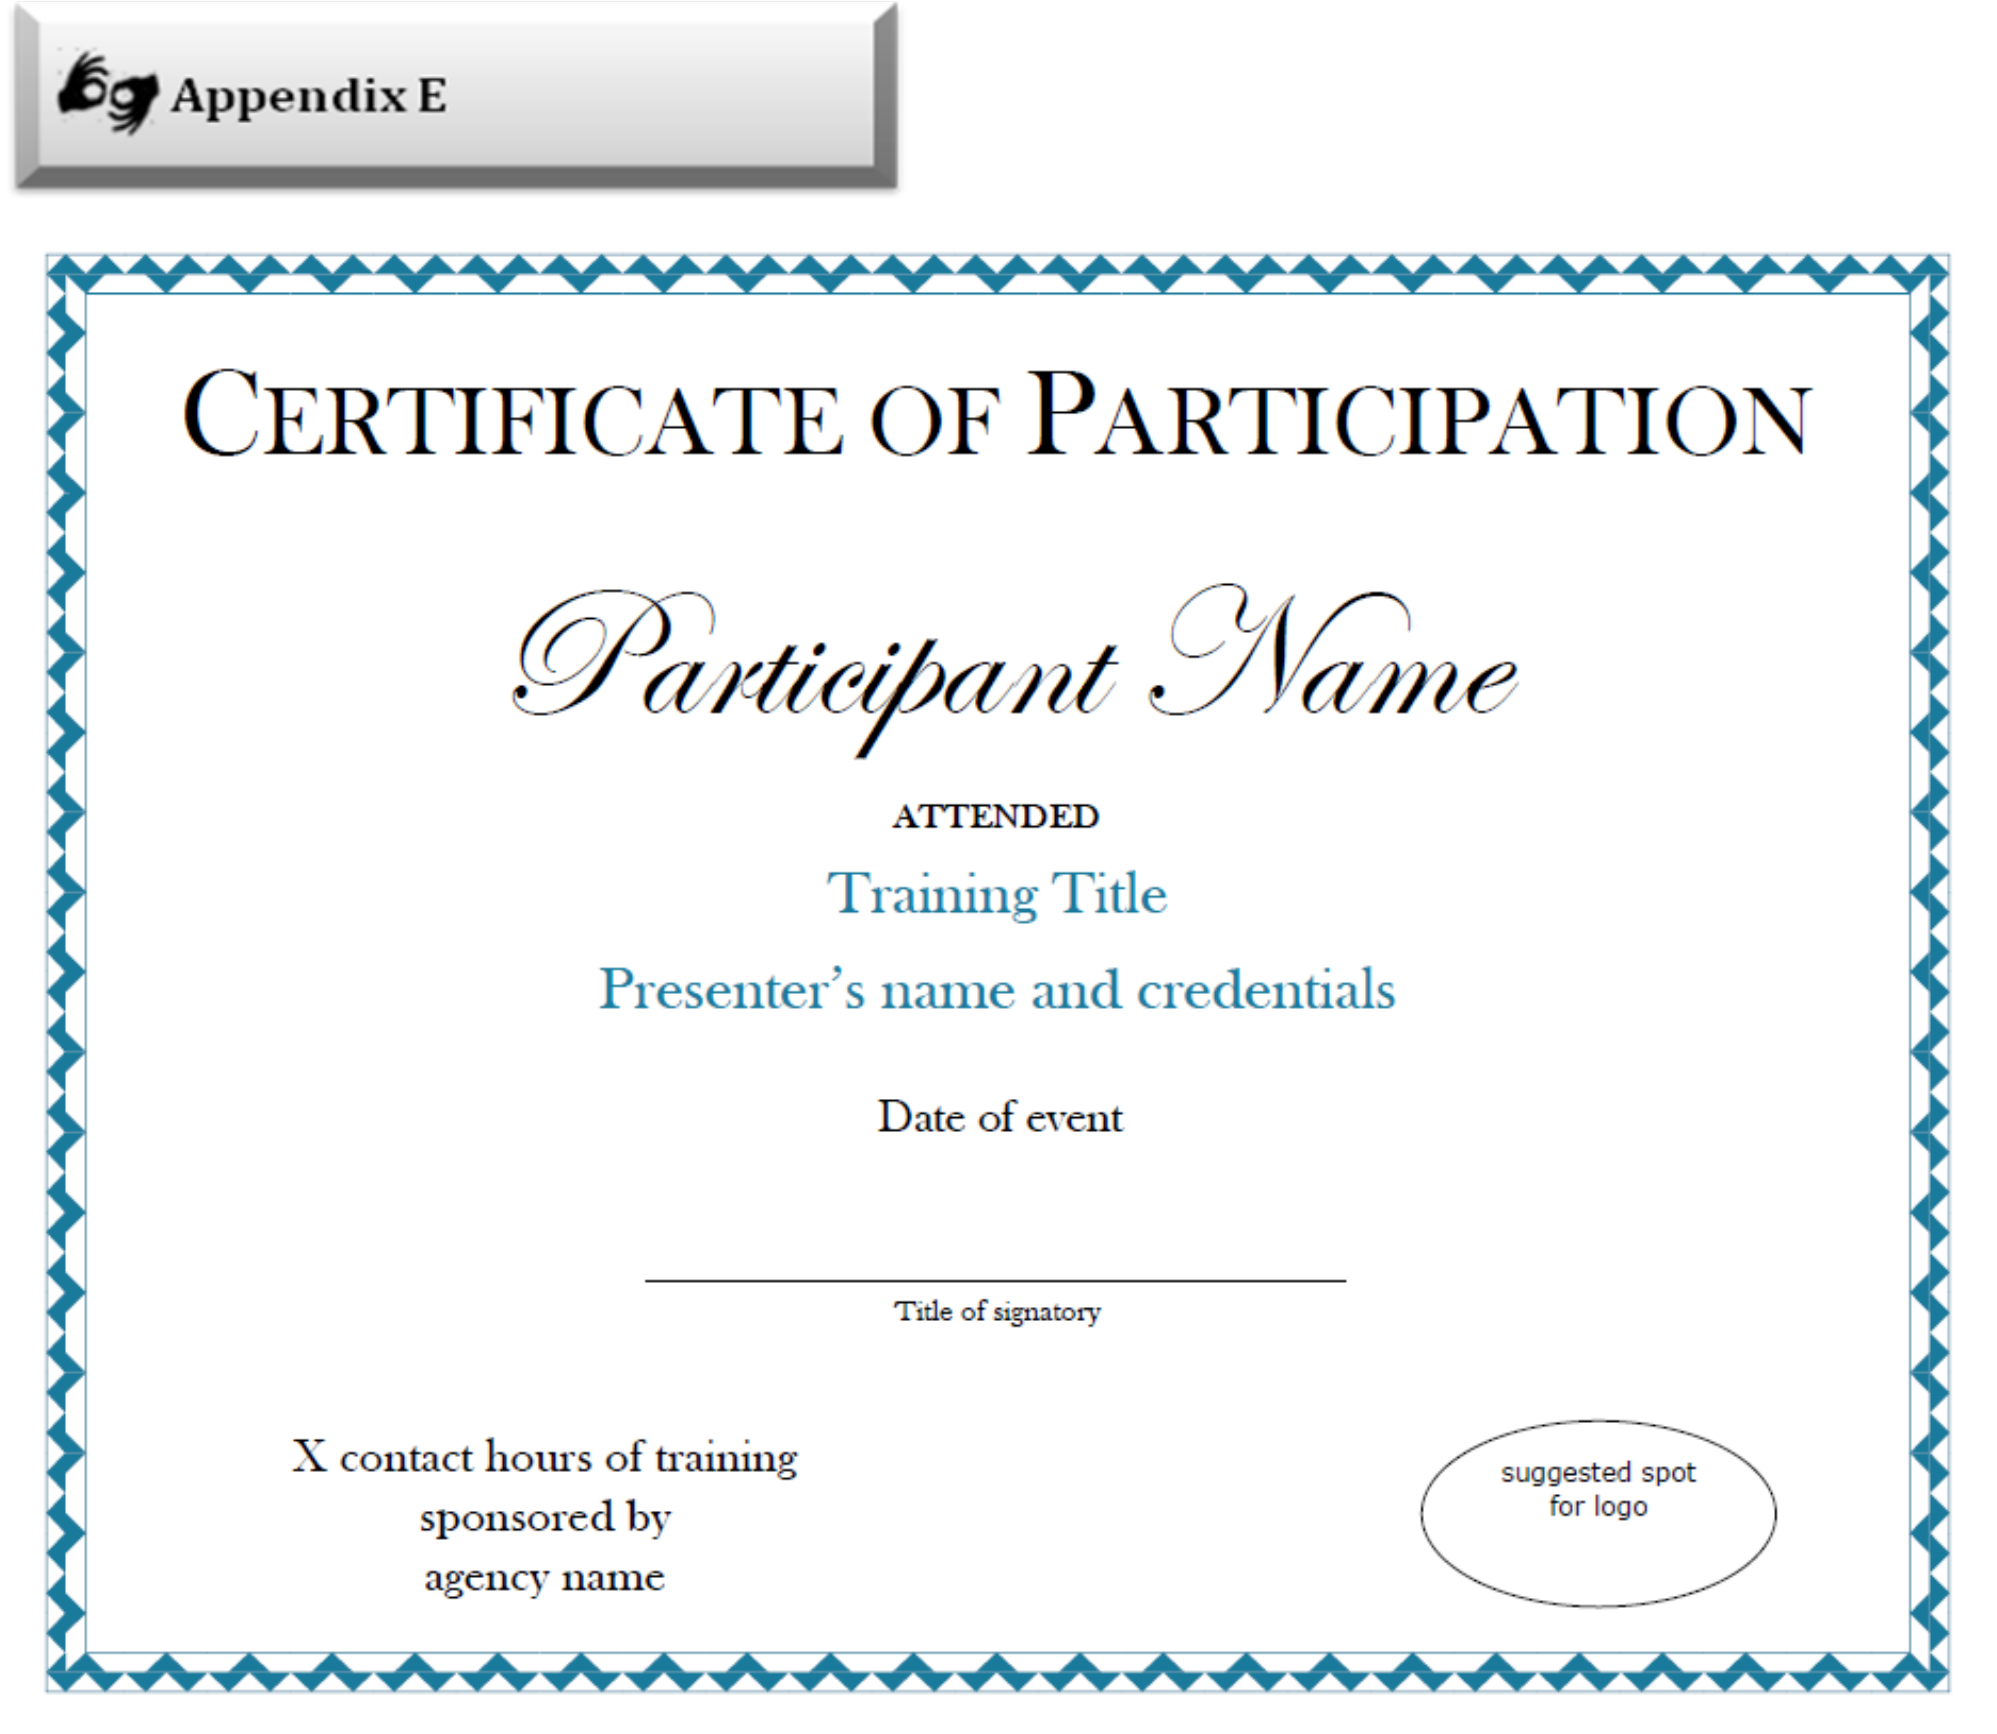 Certificate of participation sample free download for Certification of participation free template